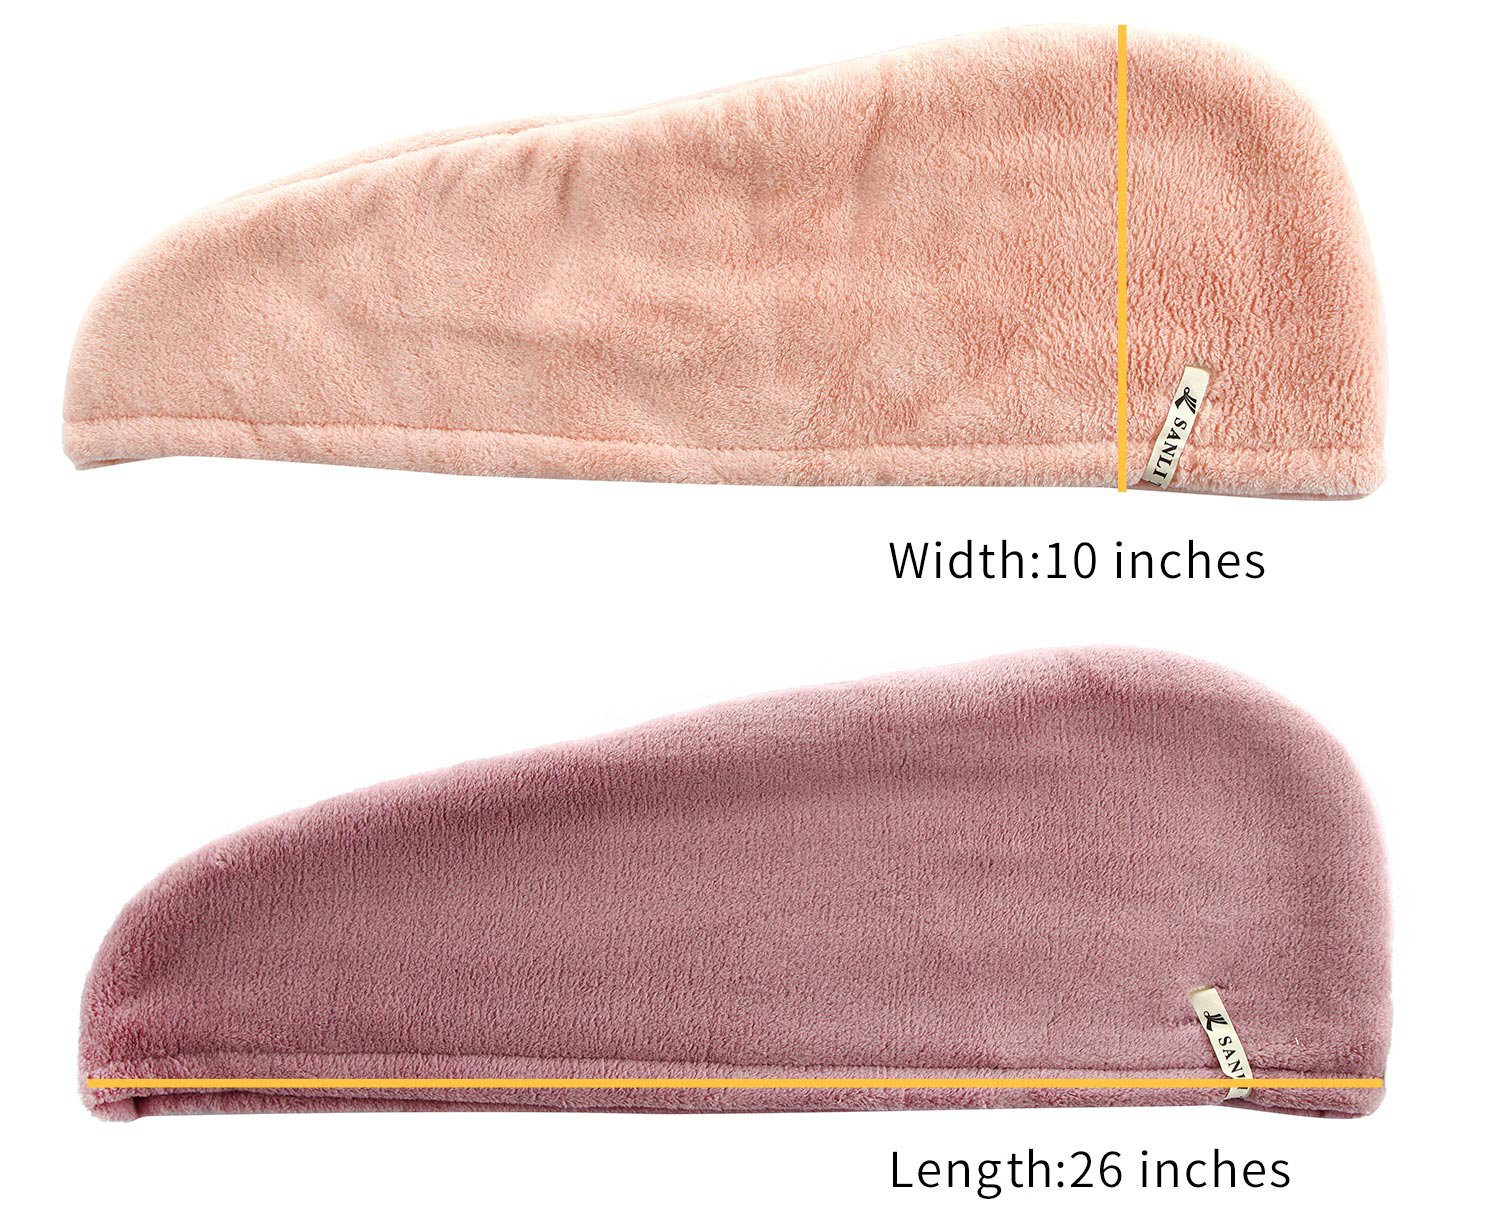 2 Pack Microfiber Hair Twist Towel Double Layer Designed Super Absorbent & Fast Drying Turban Wrap for Women Girls by Sanli (light orange+purple) by Sanli (Image #4)